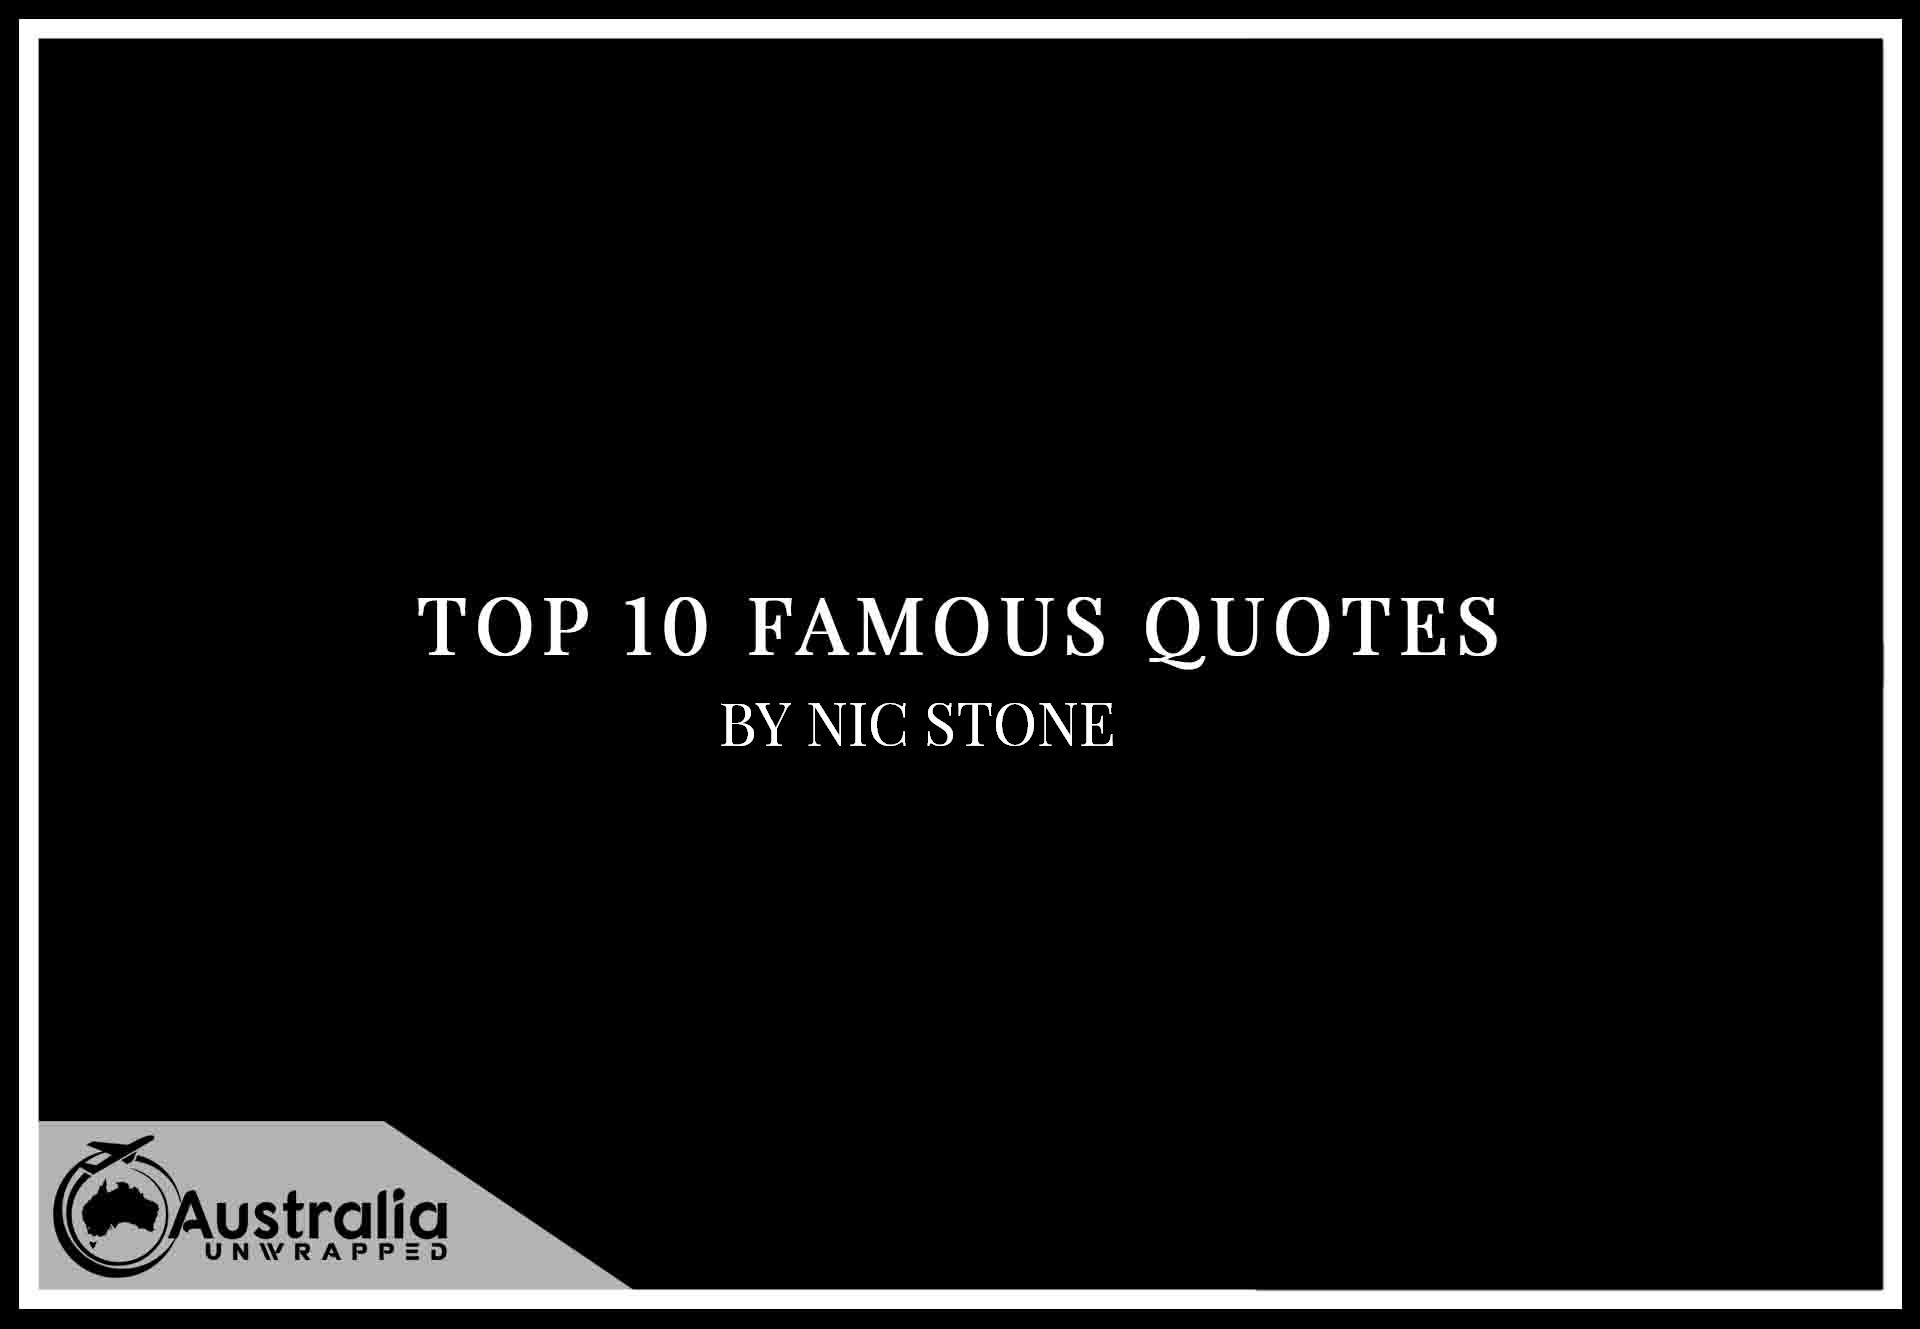 Top 10 Famous Quotes by Author Nic Stone